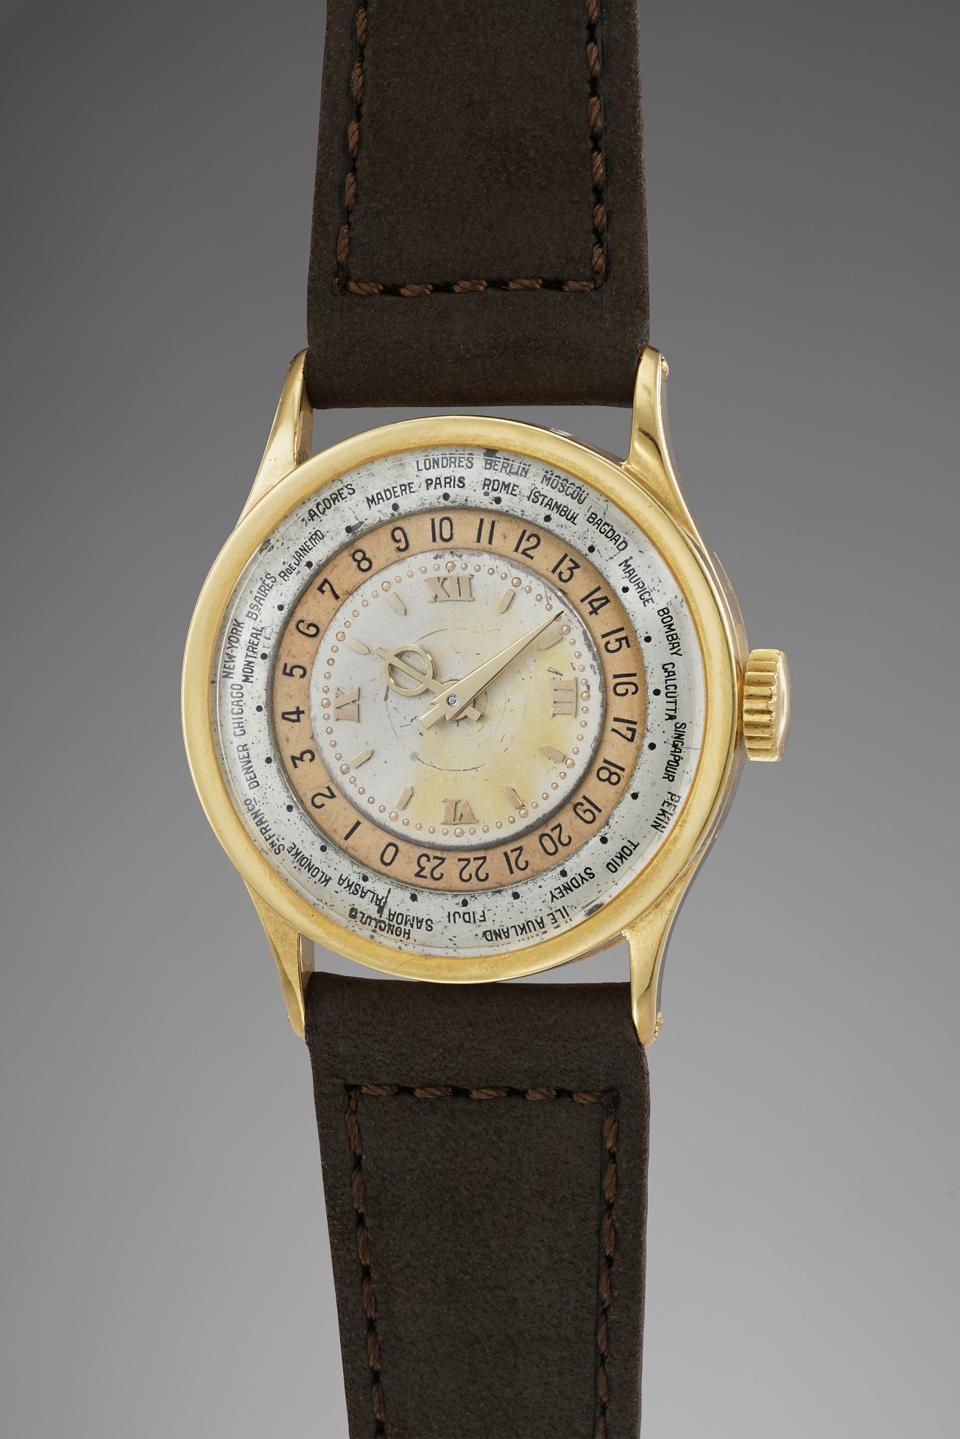 Patek Philippe 96HU prototype owned by Jean-Claude Biver fetched $408,800